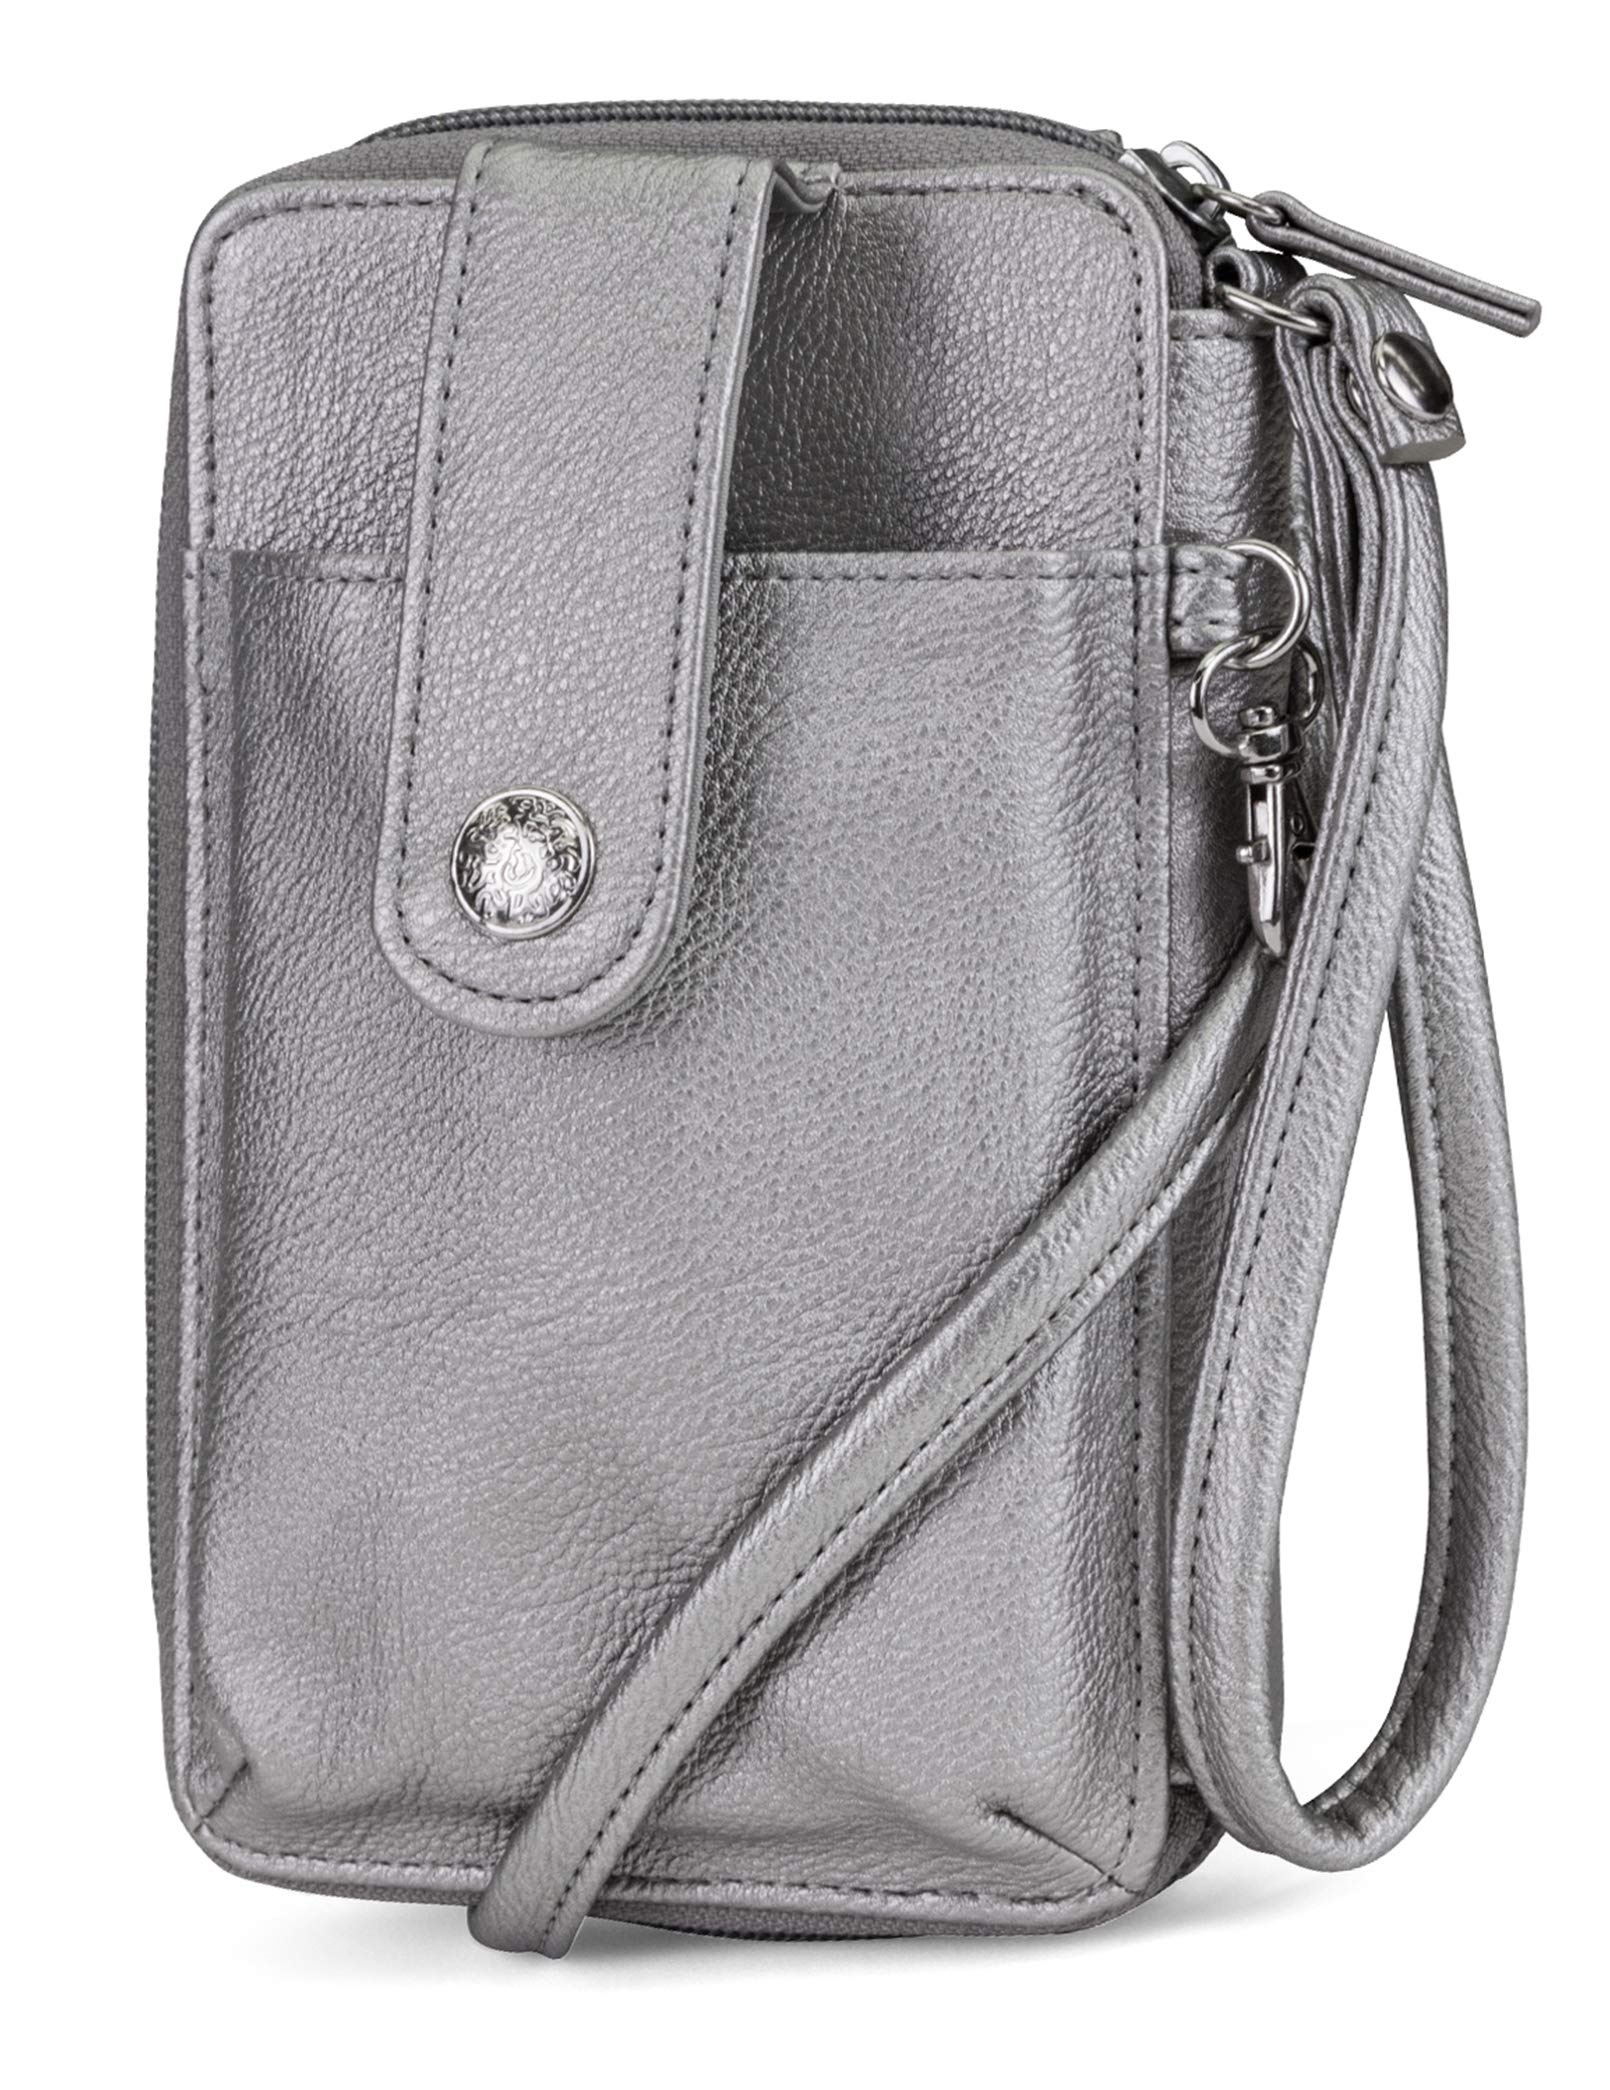 Mundi Jacqui Vegan Leather RFID Womens Crossbody Cell Phone Purse Holder Wallet ((Pewter))